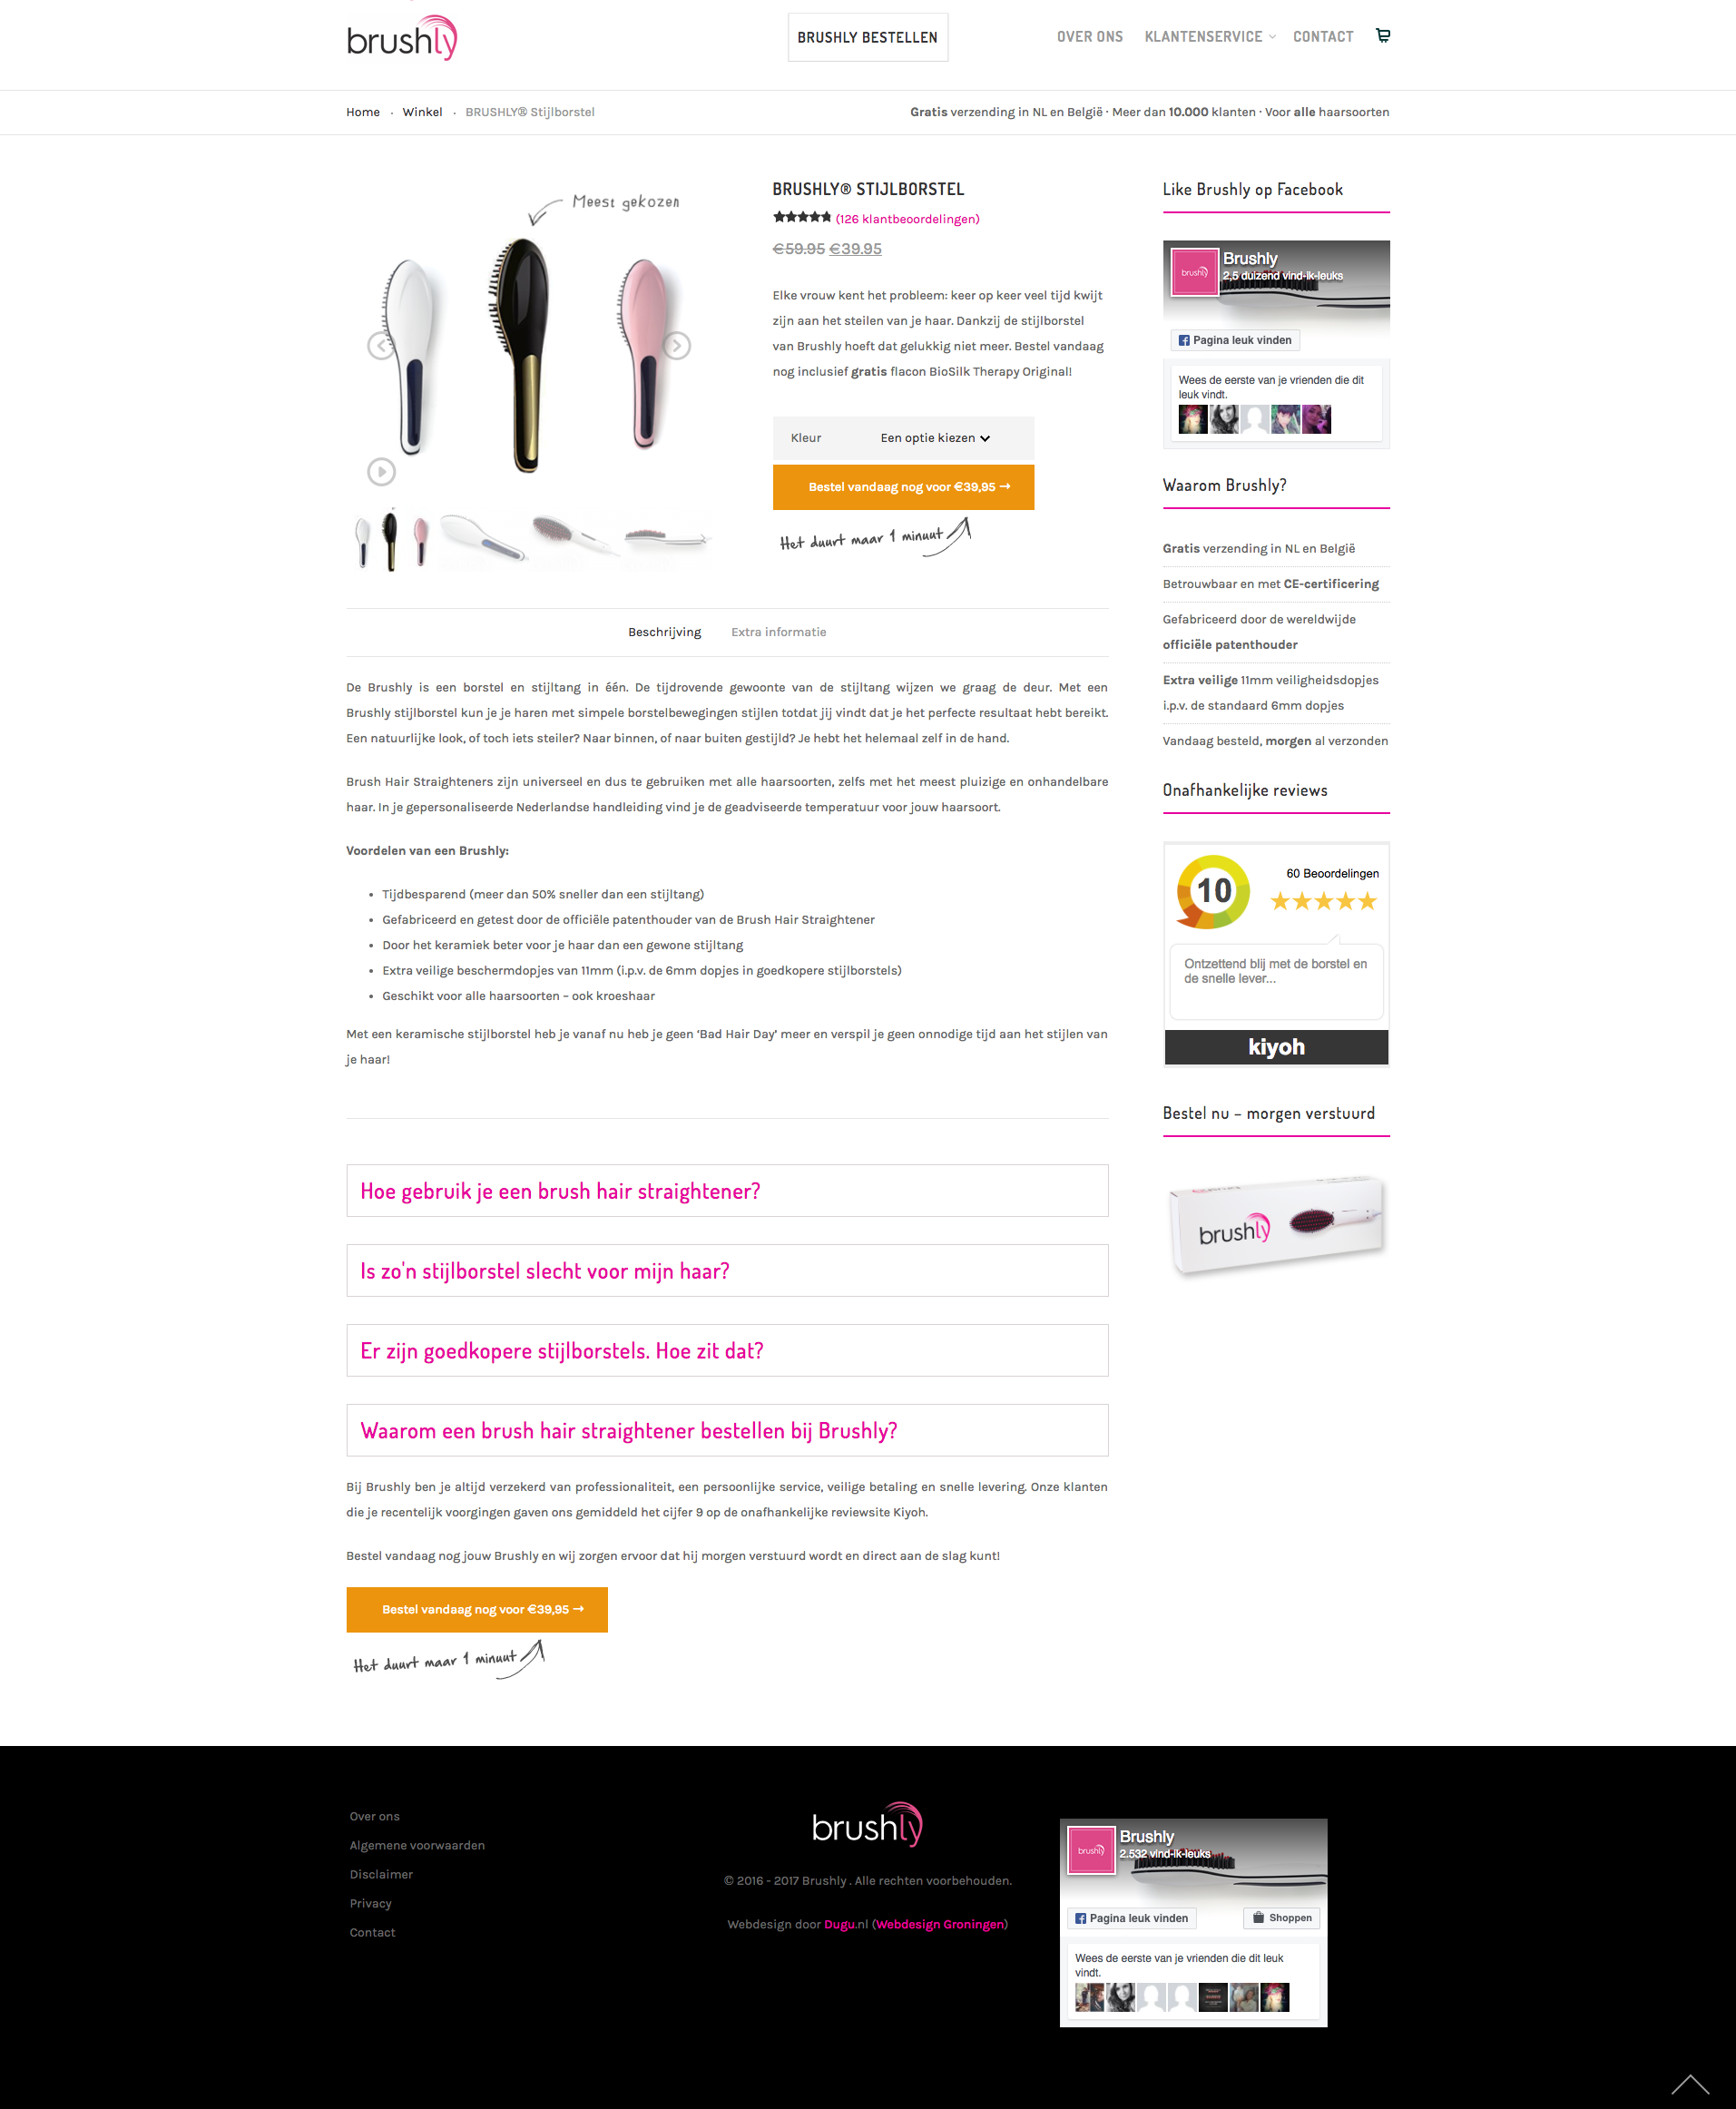 screencapture-brushly-nl-product-brushly-1506622082953.png